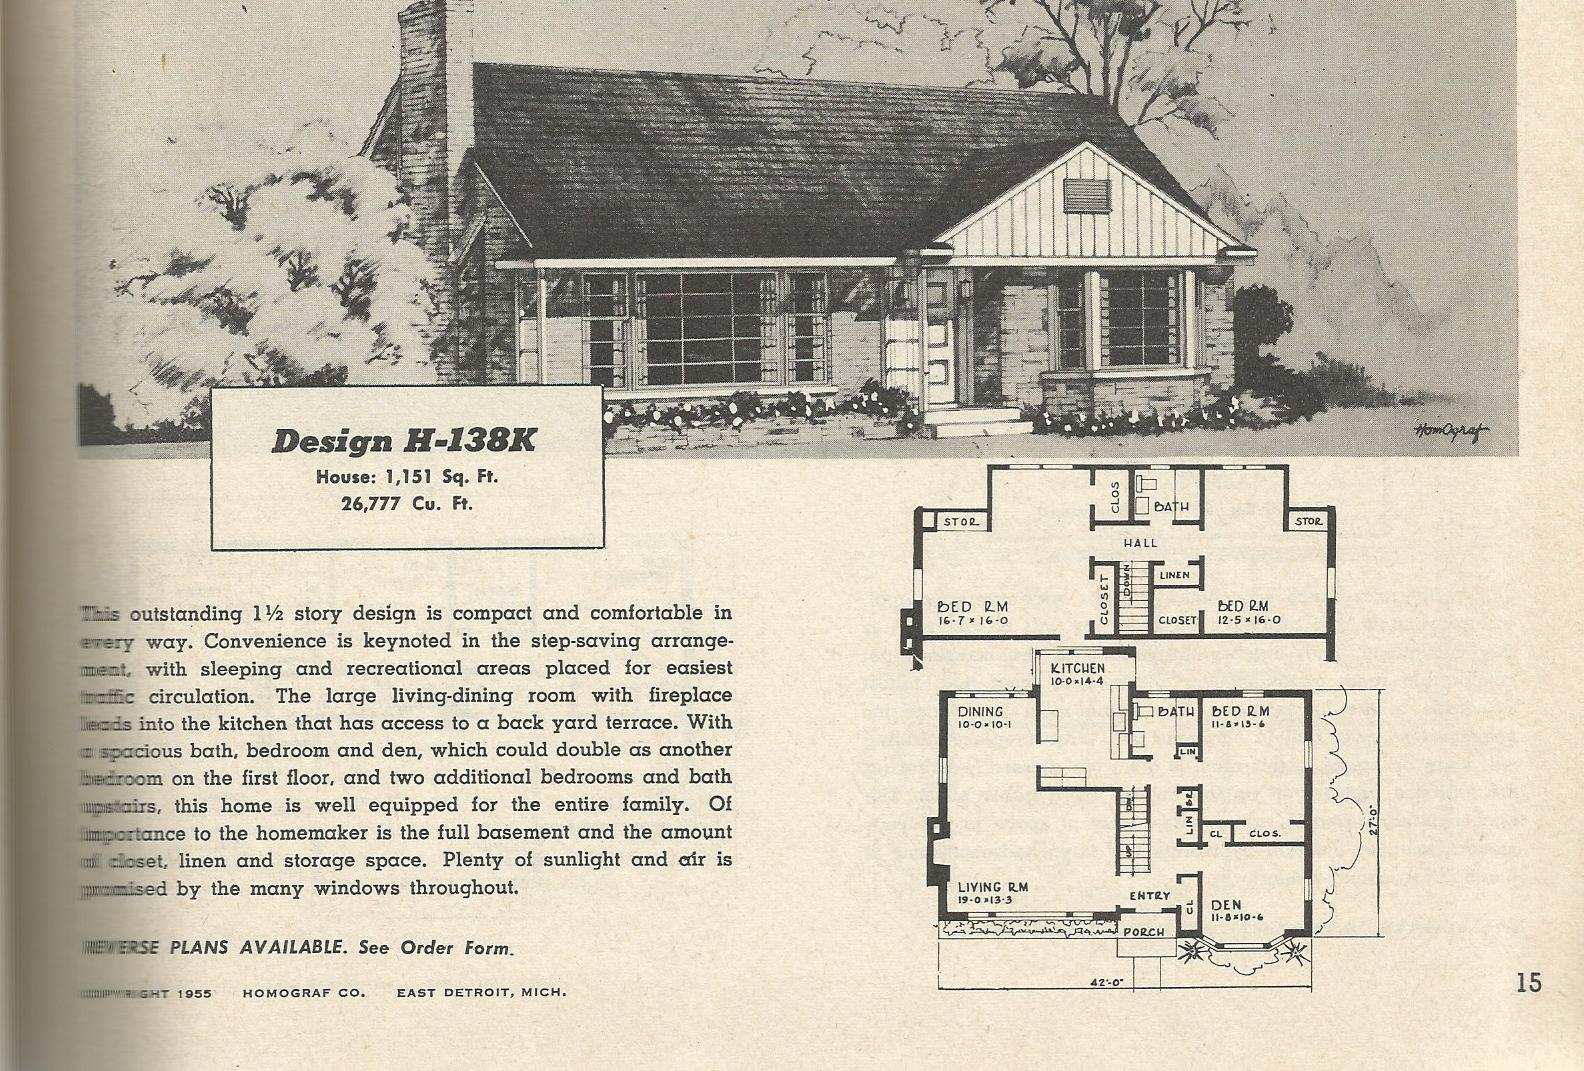 Captivating Vintage House Plans 1950s Budget Wise Ramblers Antique Alter Ego ...